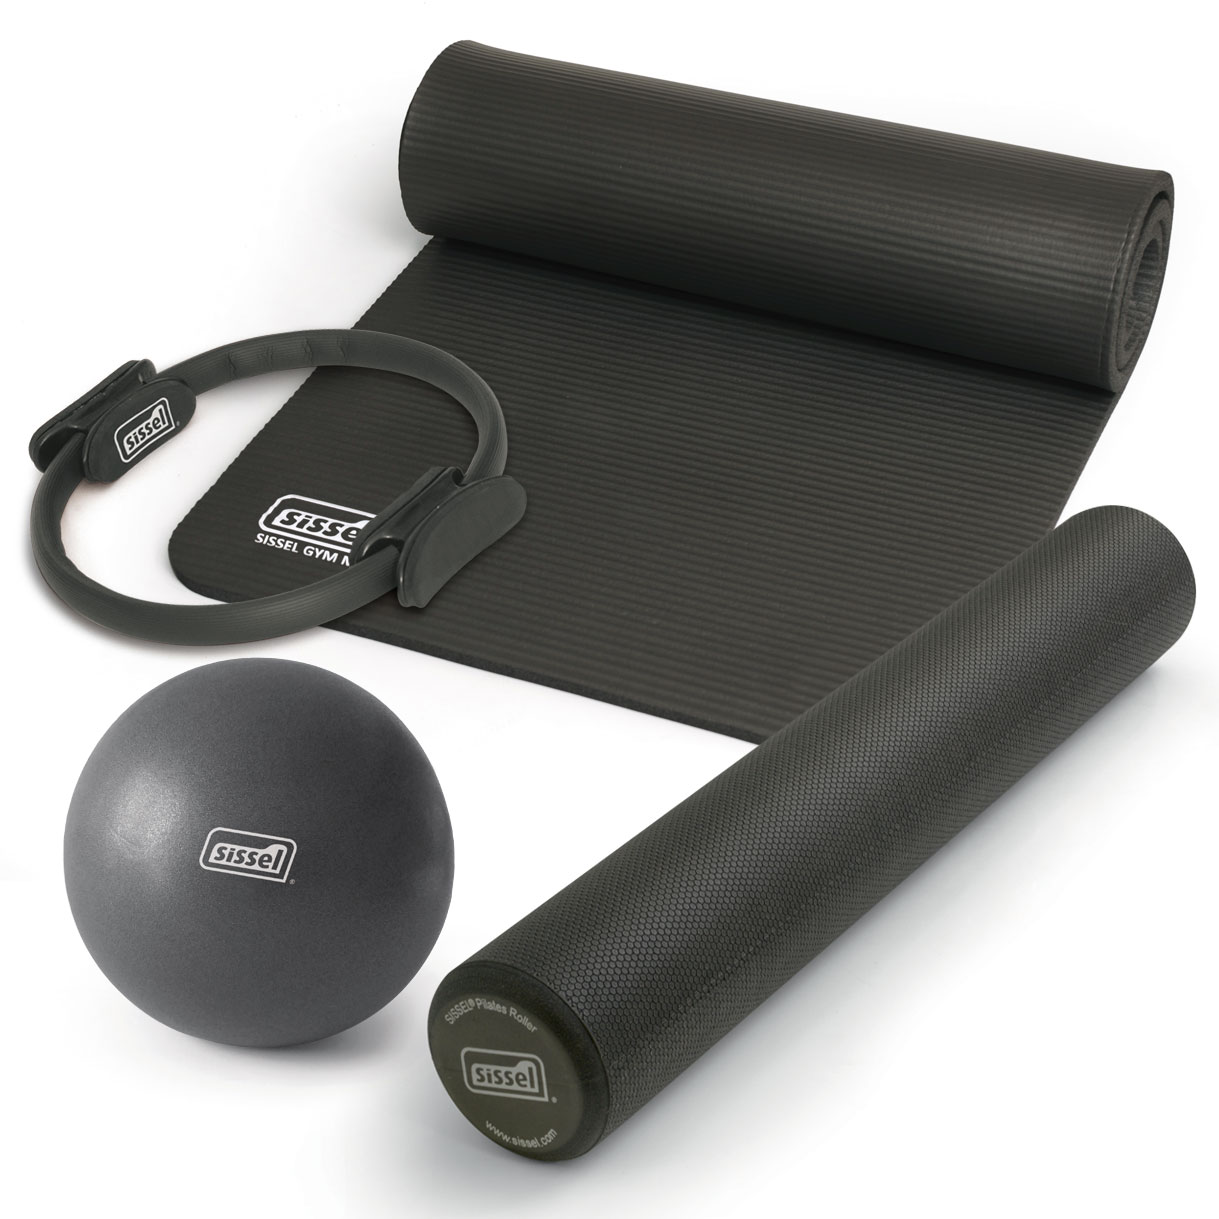 KIT PILATES CASA n°1 ANTRACITE: Circle, Soft Ball, Rullo e Materassino